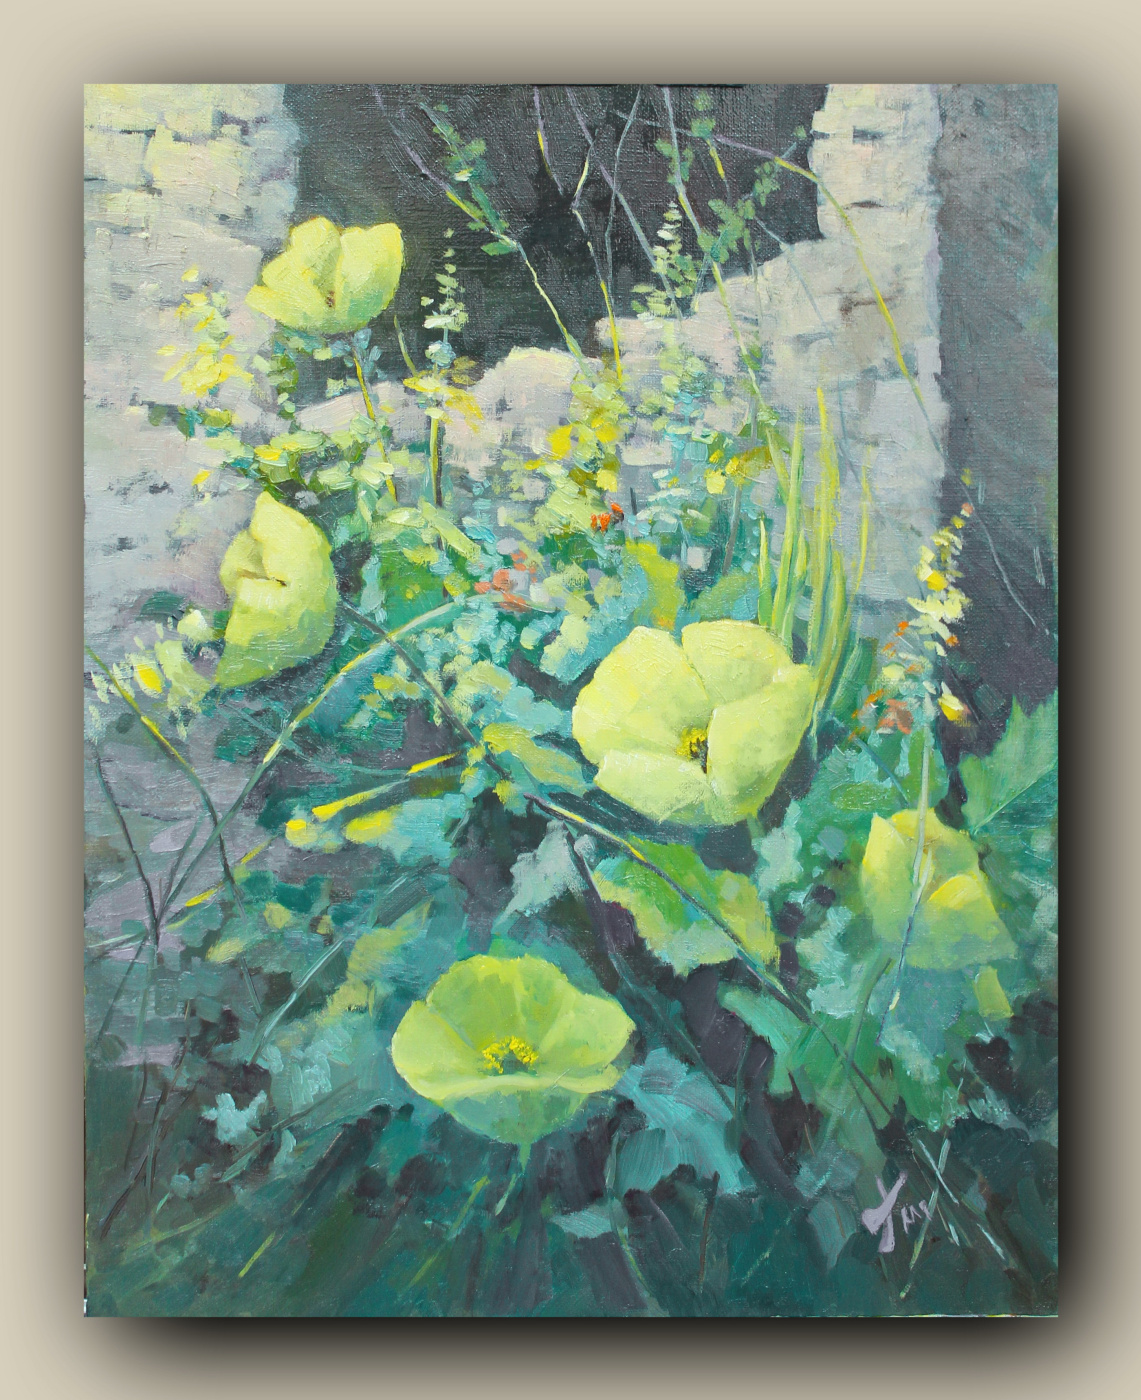 Marina sokolova. Yellow poppies, author's work